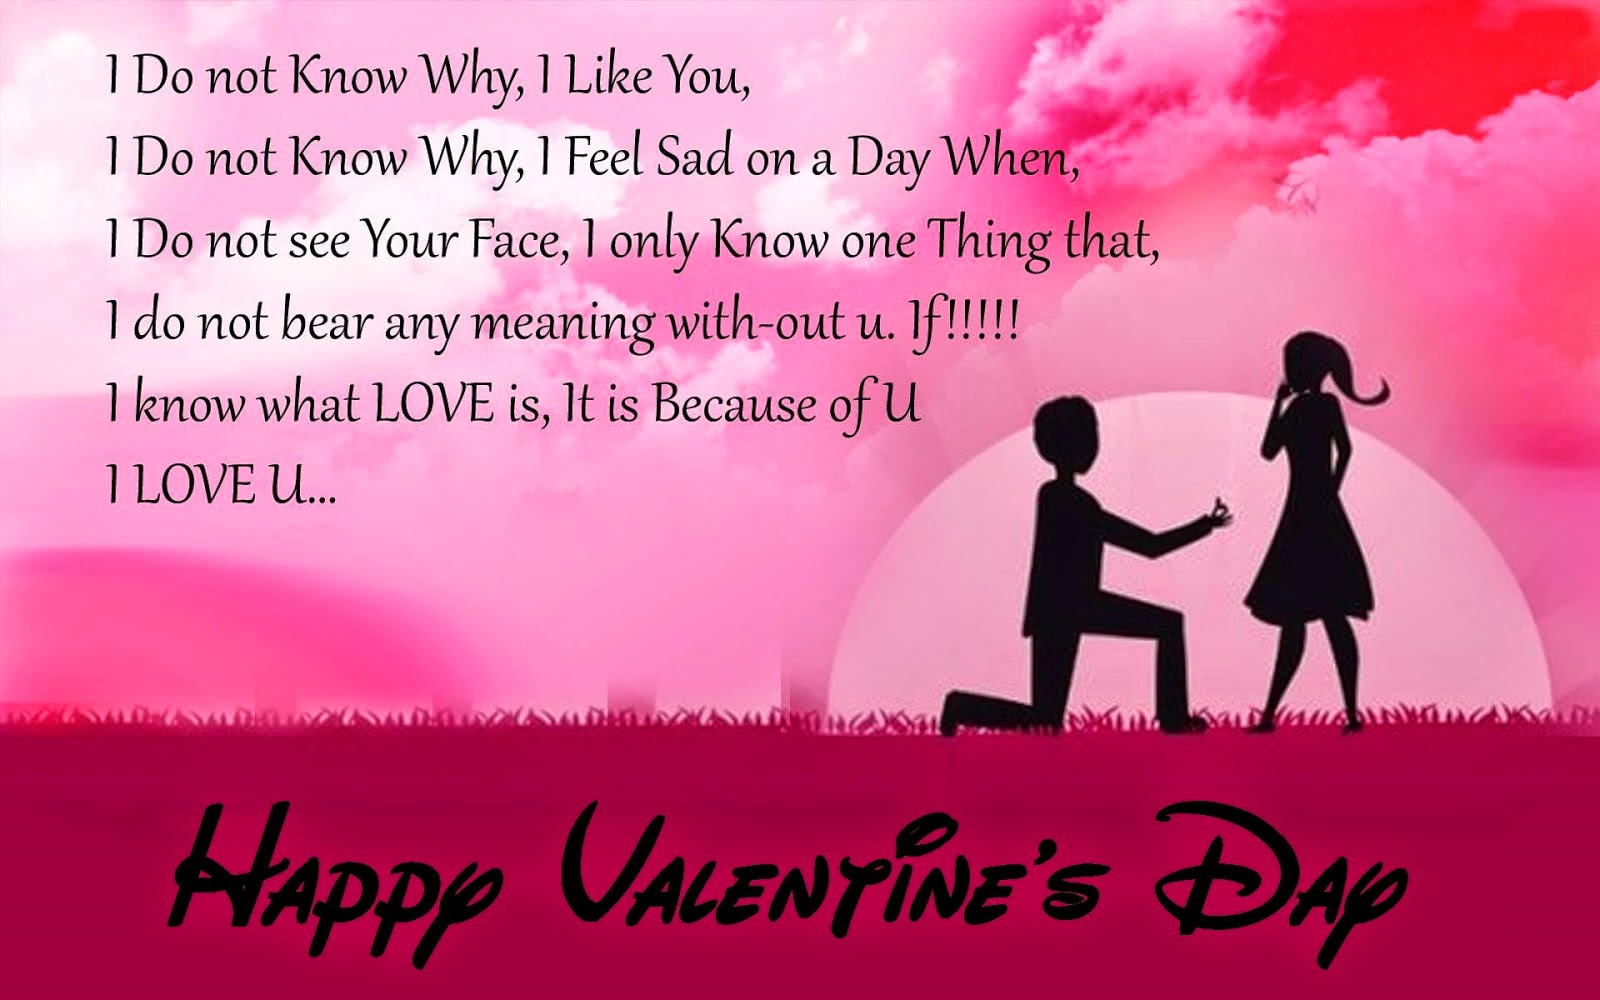 Happy Valentines Day HD Cards